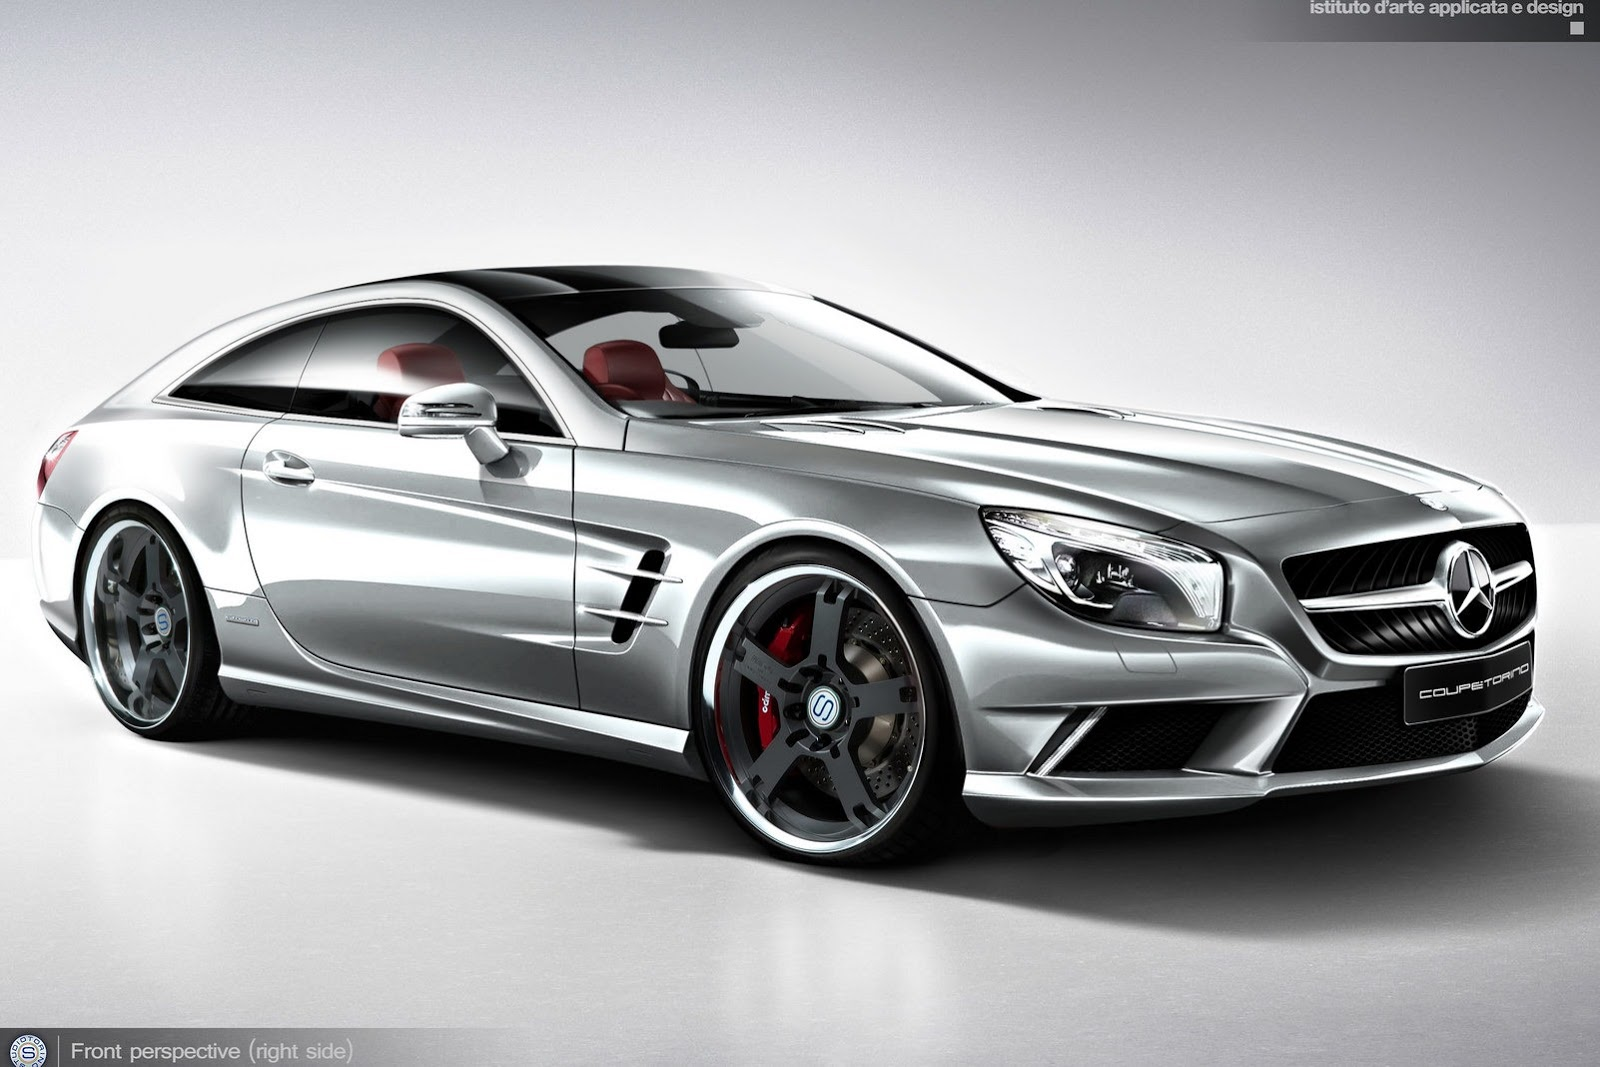 2013 Studiotorino Mercedes Sl Coupetorino Concept Dark Cars